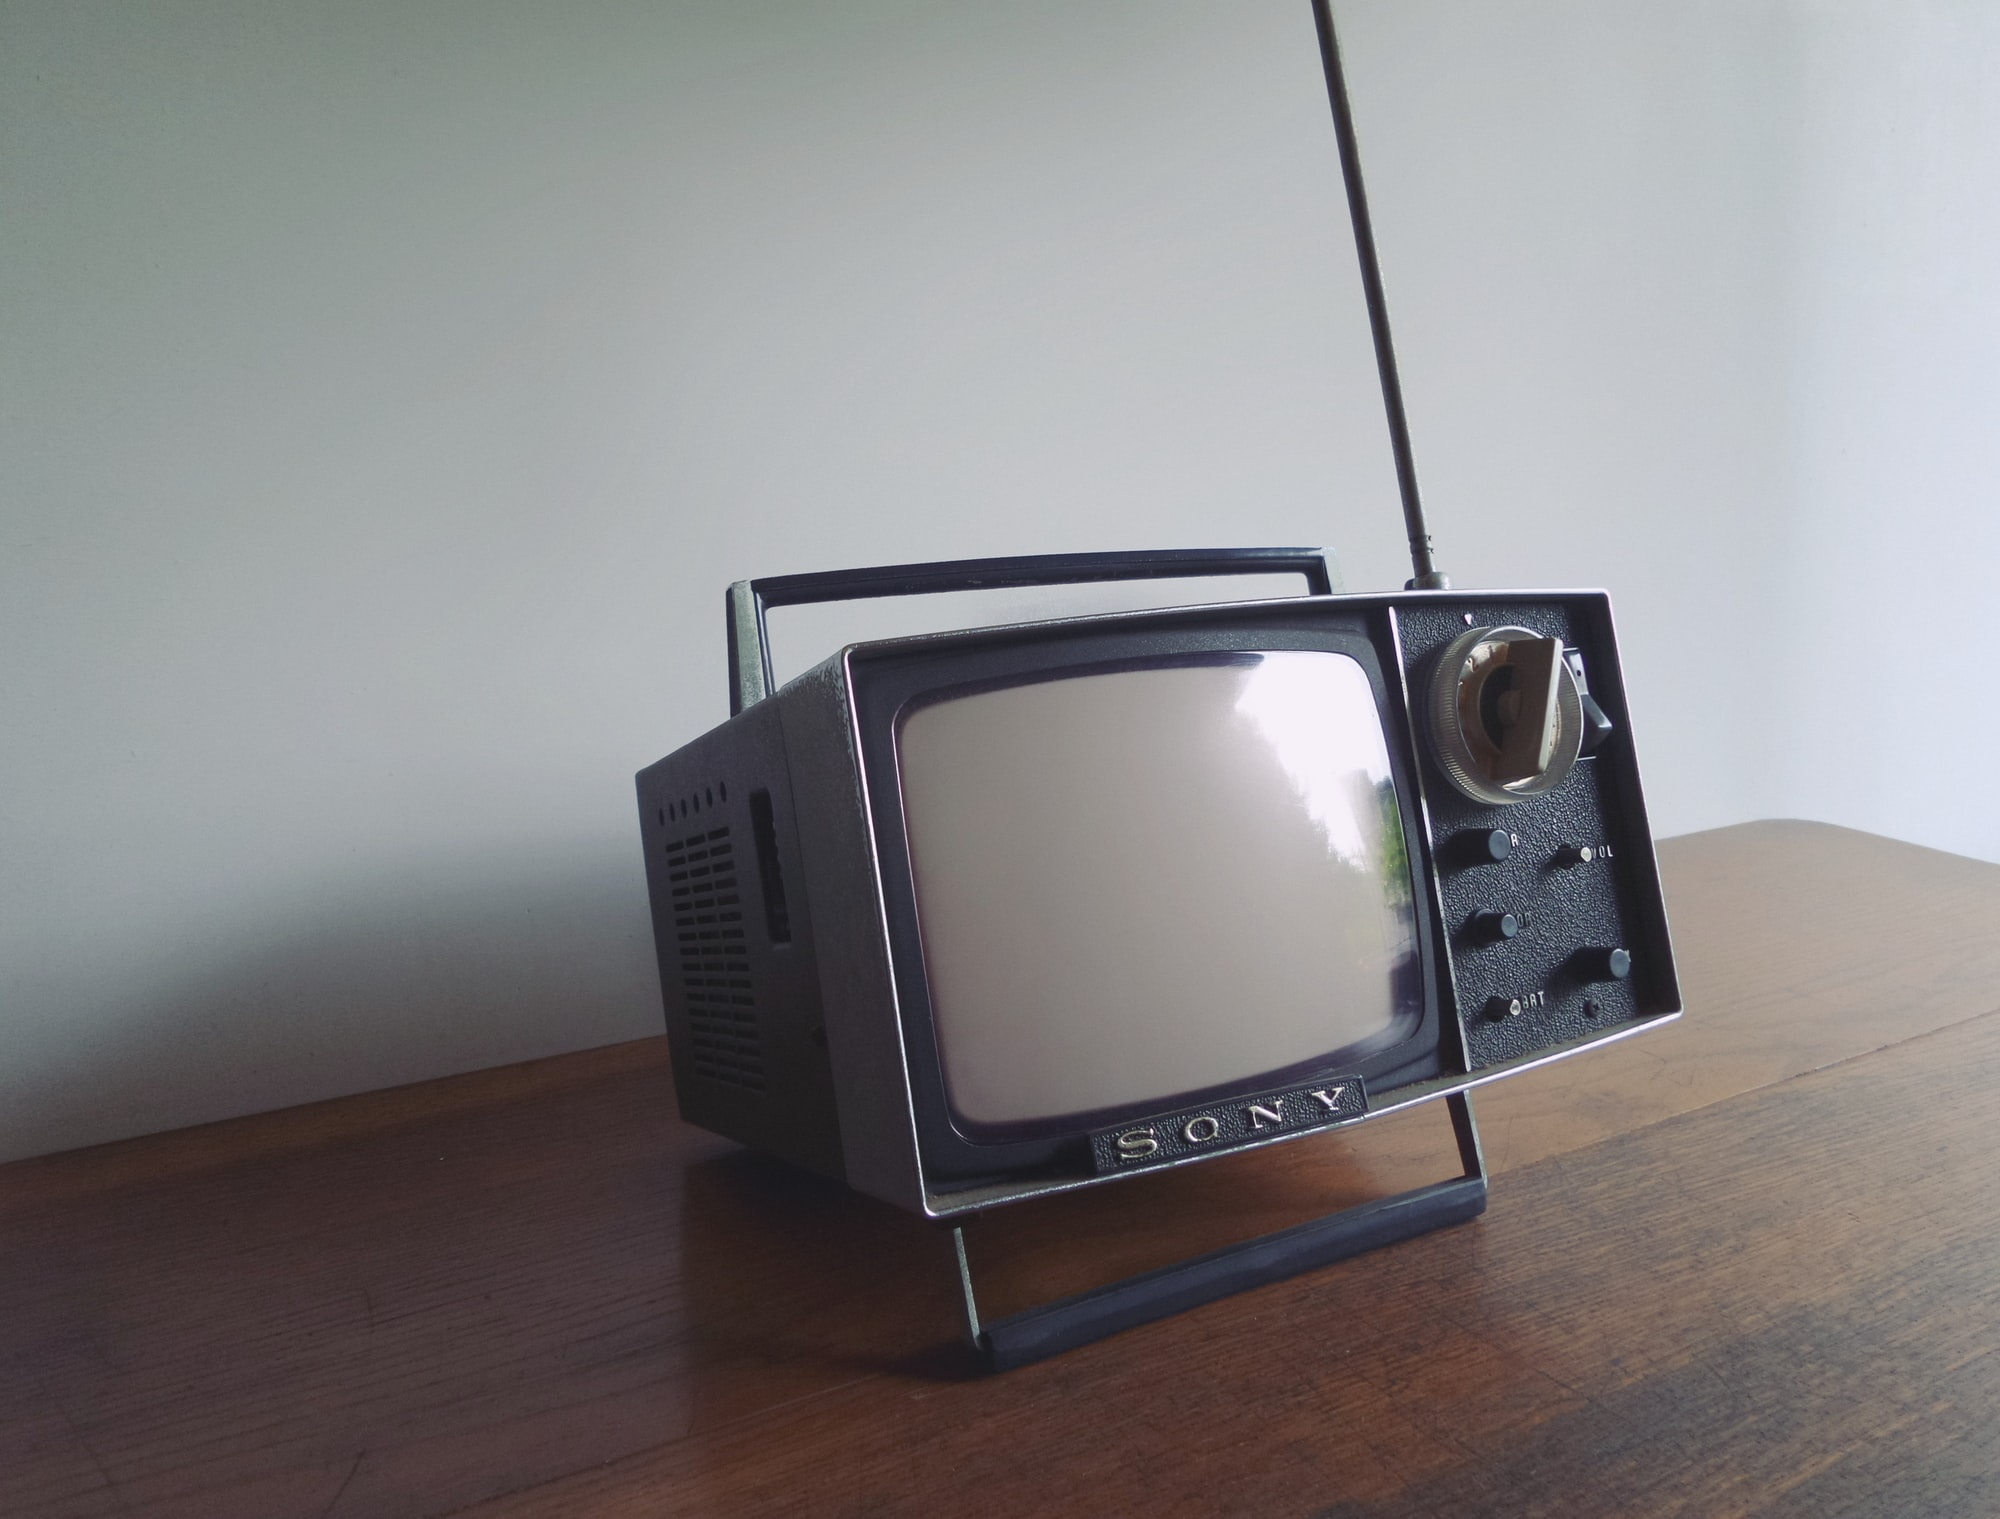 Aereo - The Future of Television?